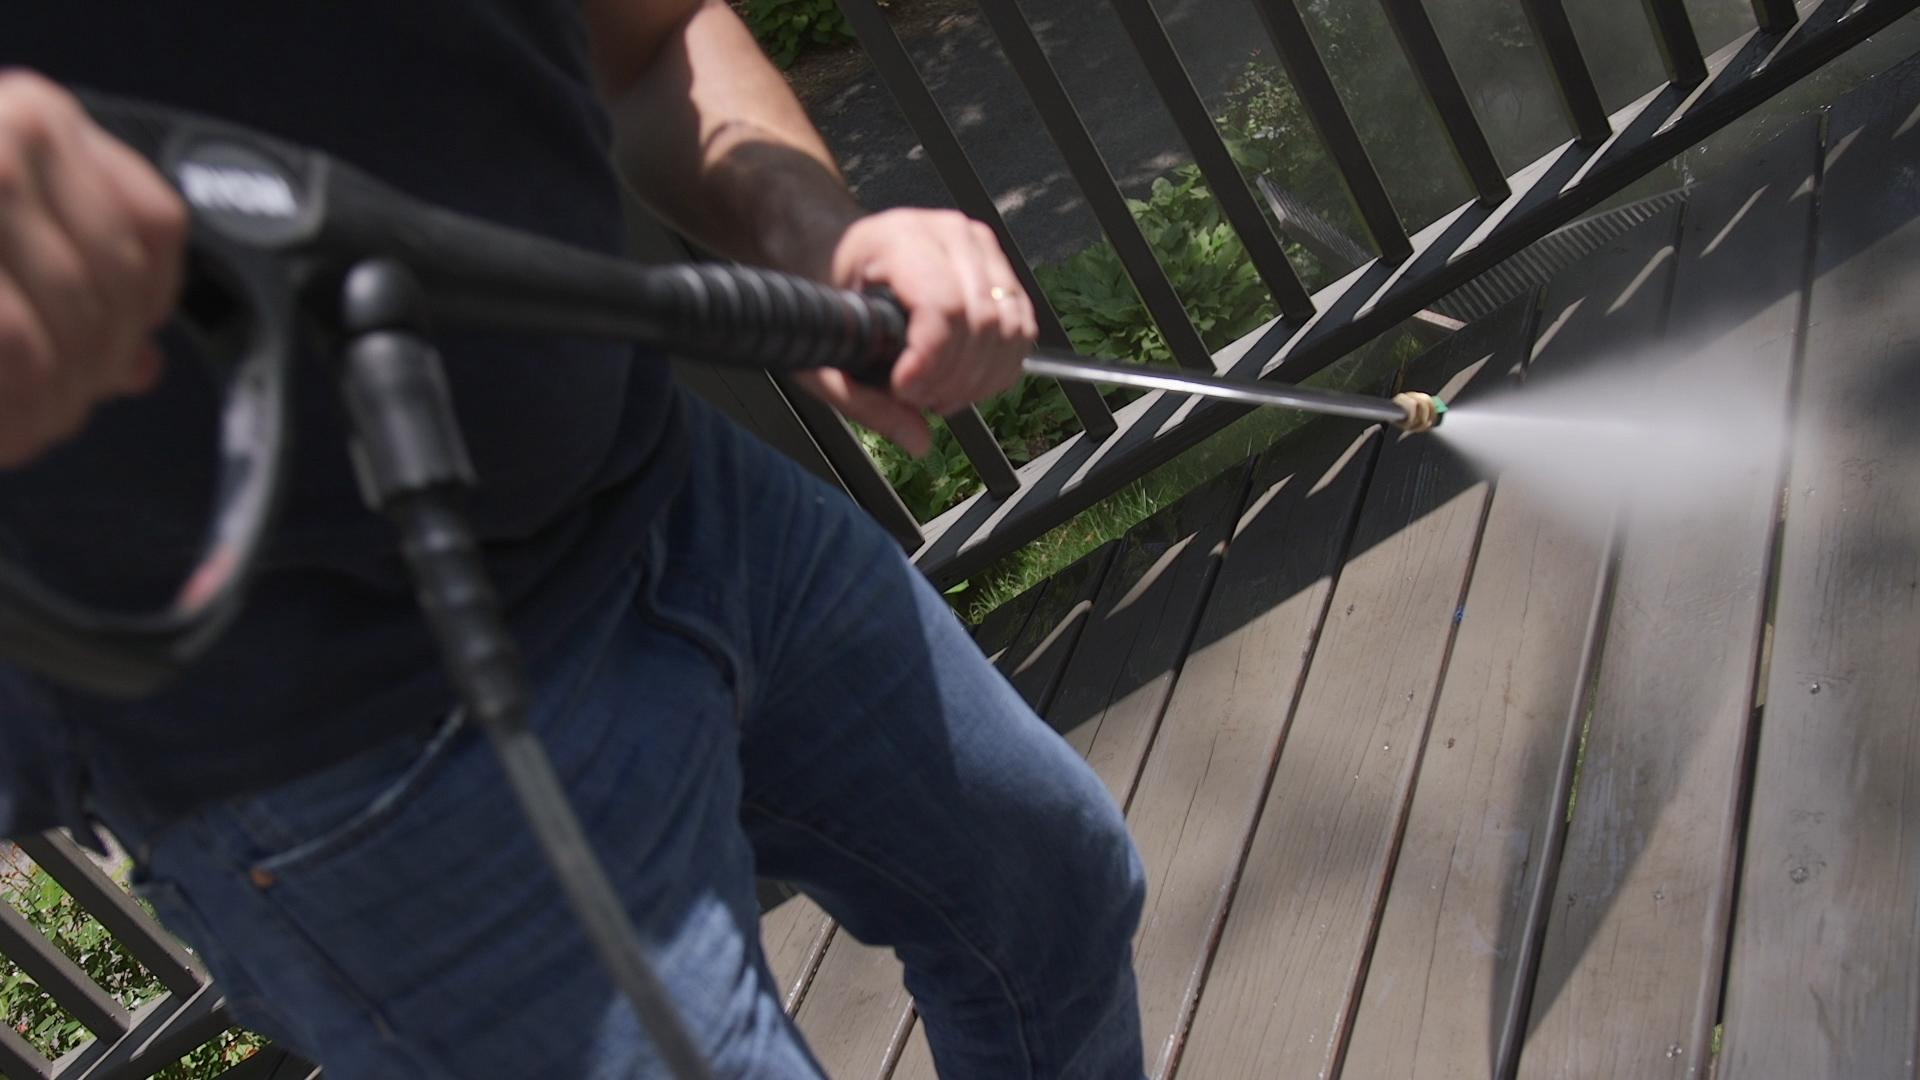 surfaces safe to clean with pressure washer - consumer reports